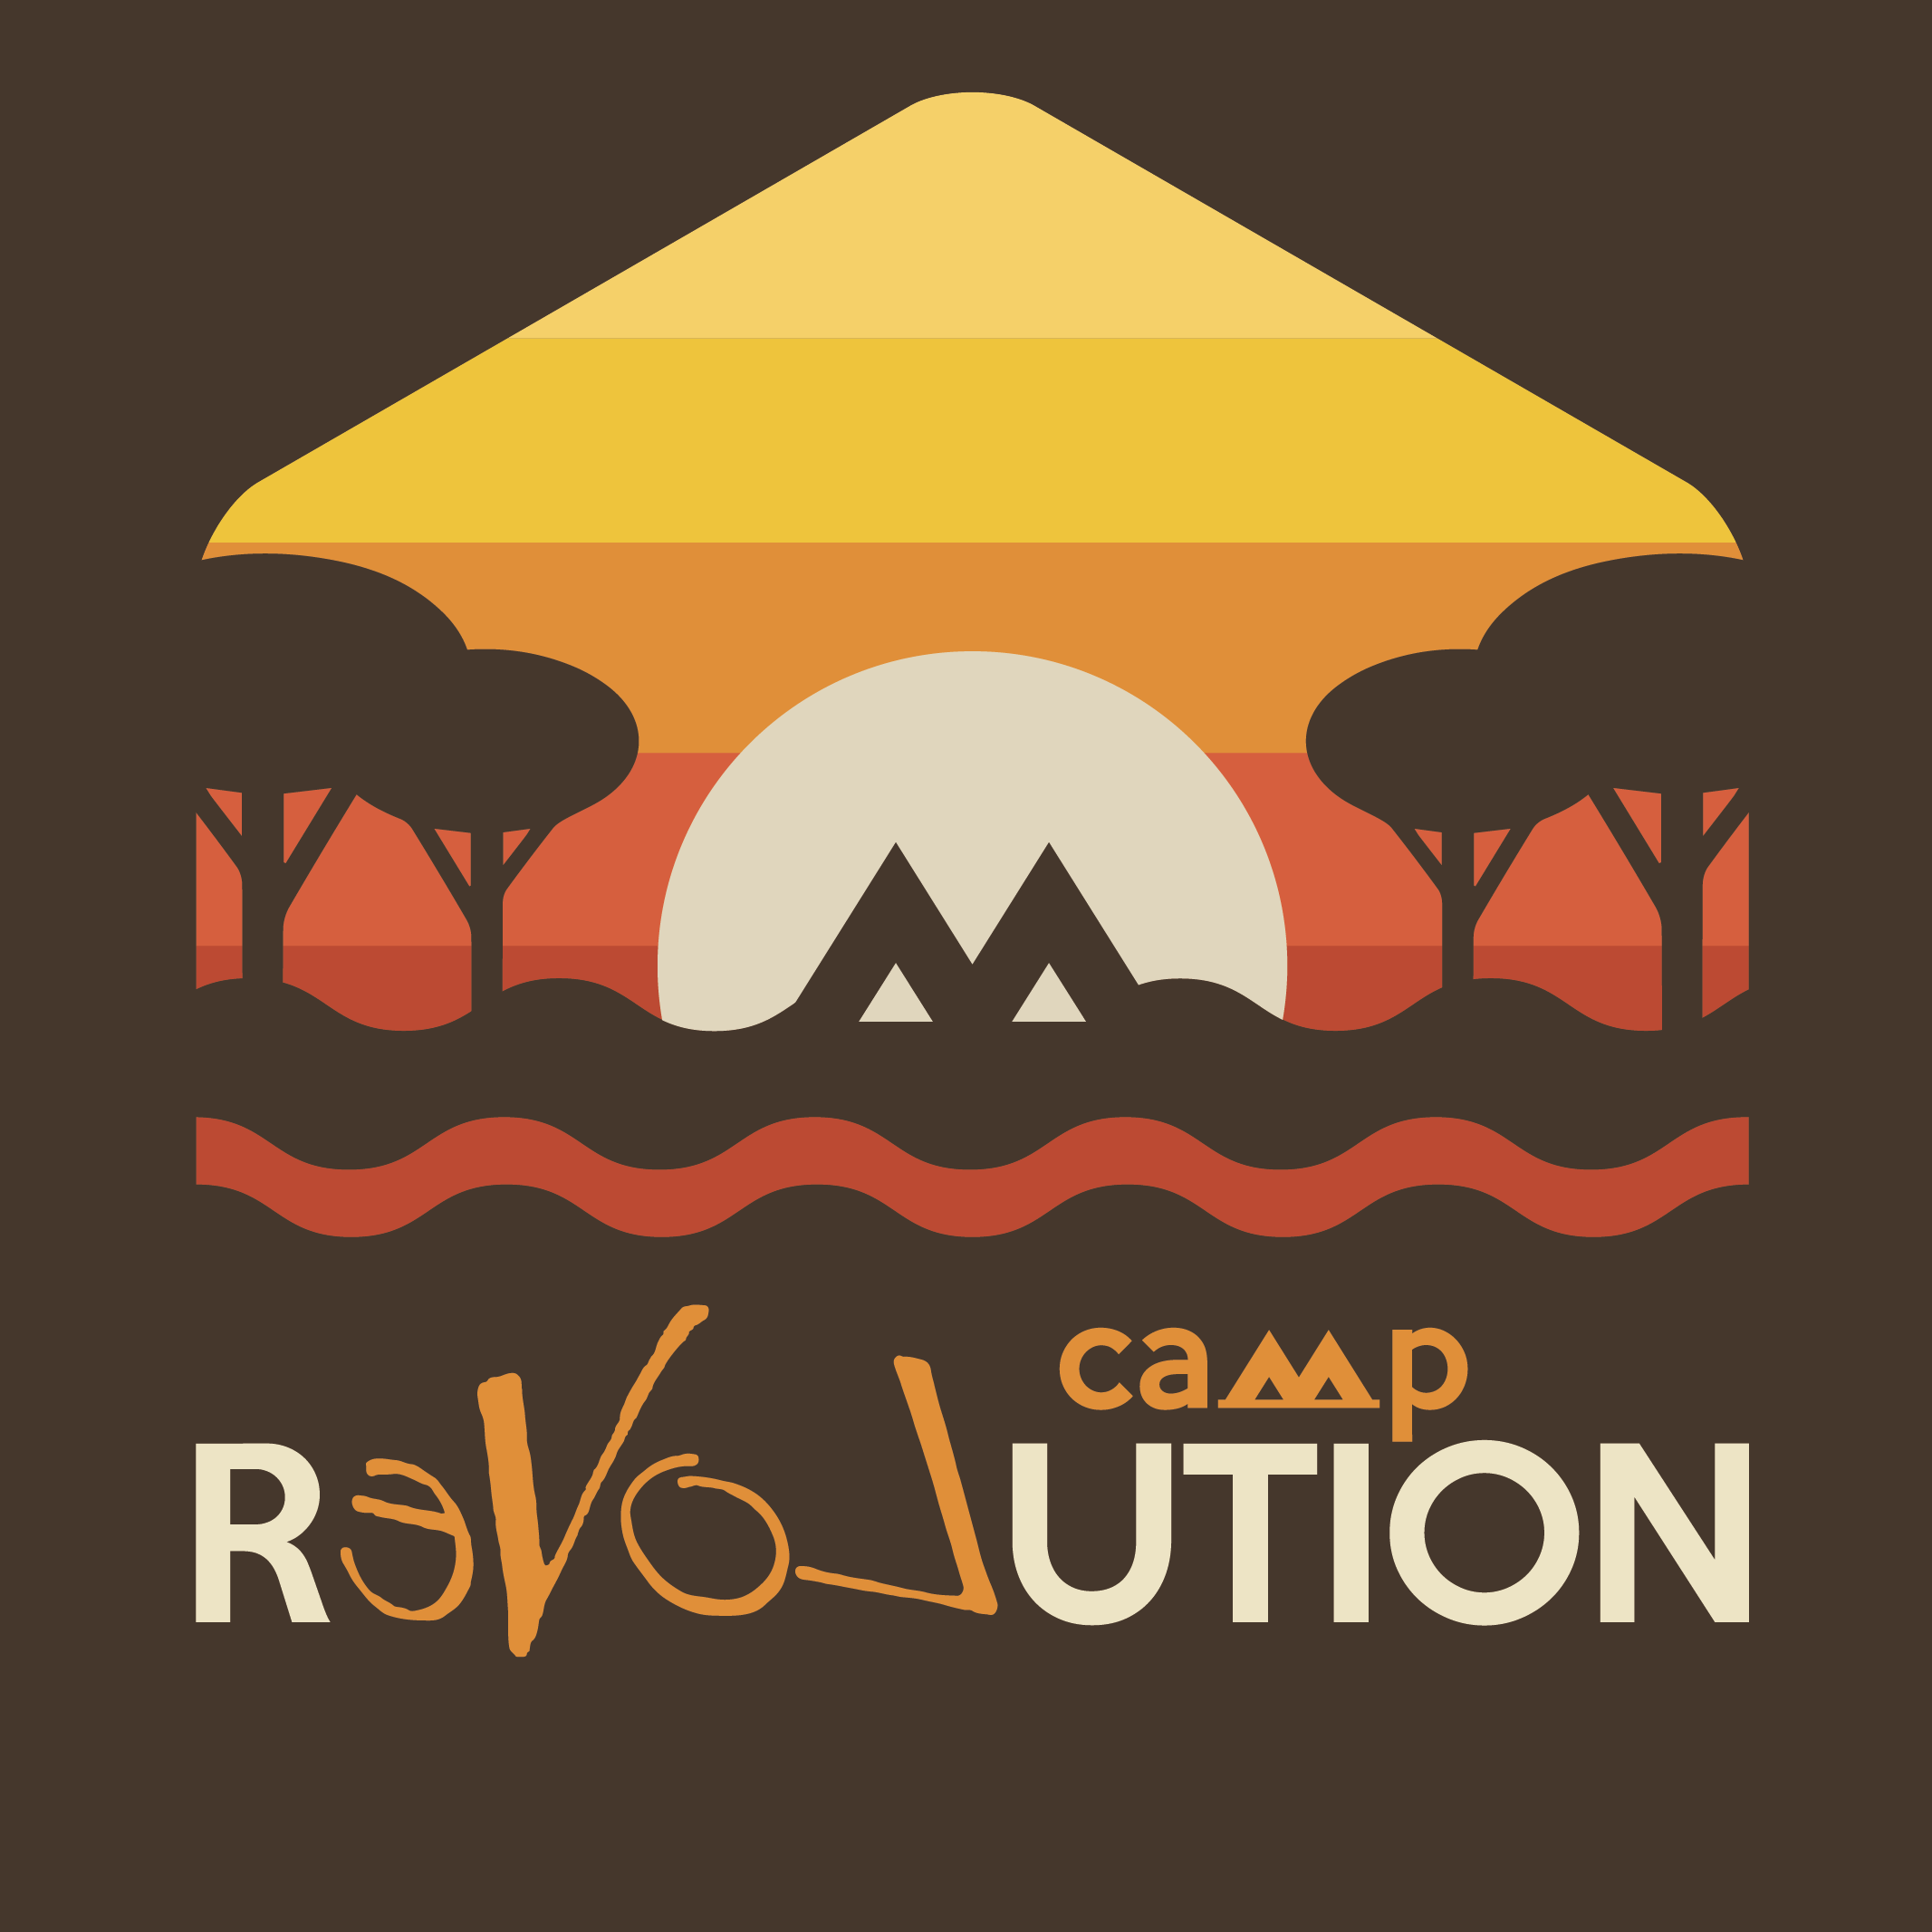 logo-revolution-camp-2018-01-02